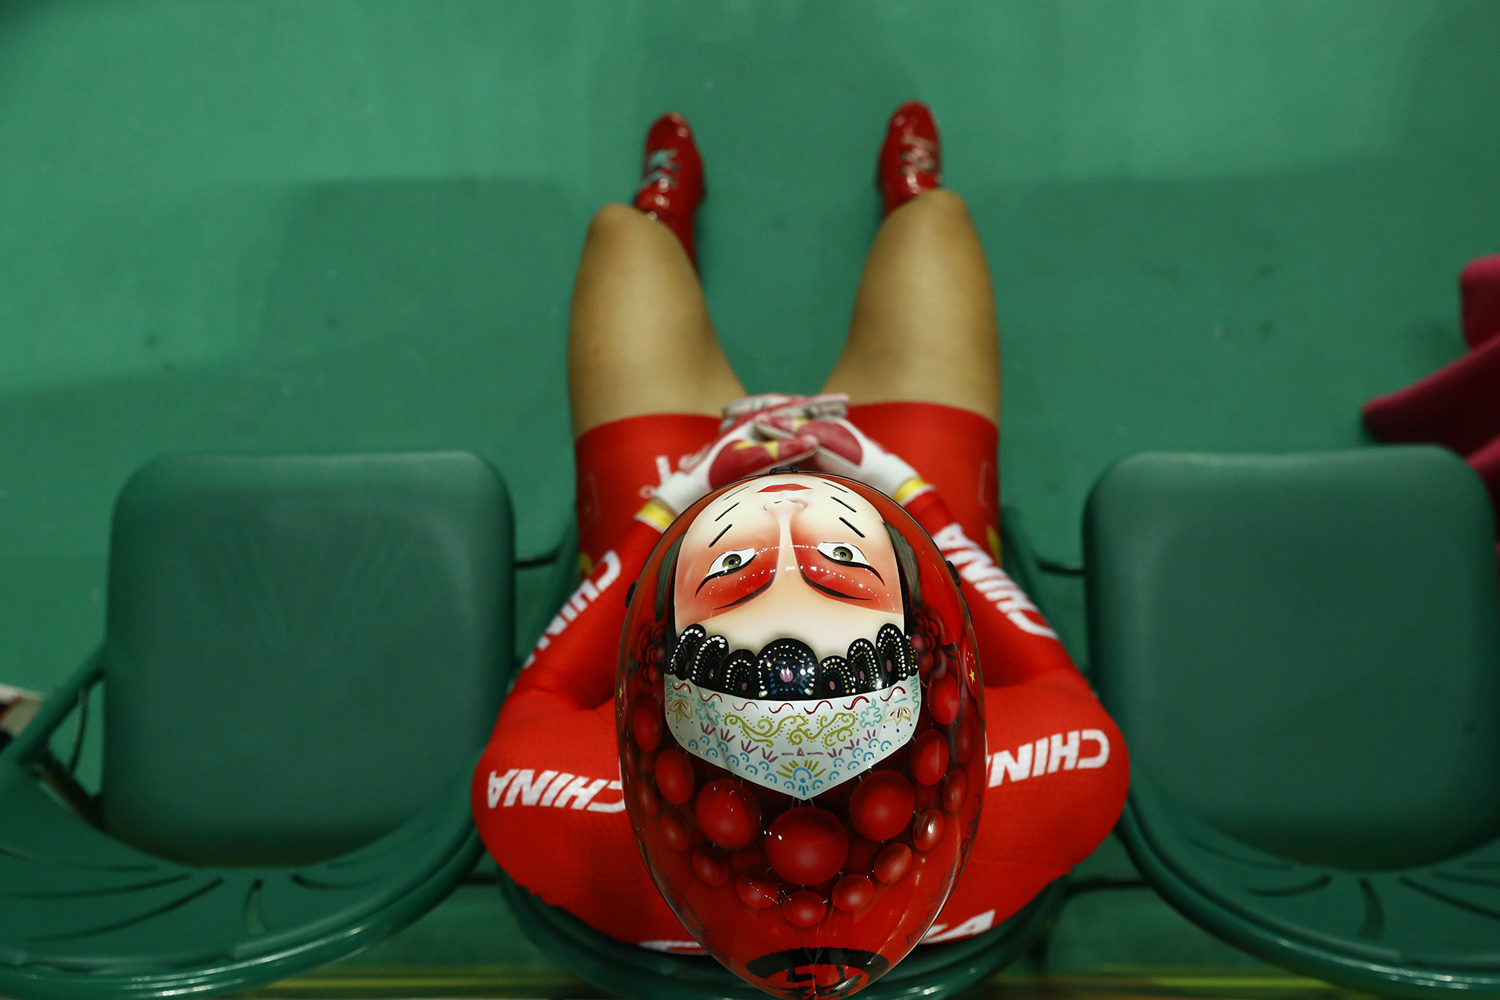 Zhong Tianshi of China waits to compete in the women's keirin second round cycling event at the Rio Olympic Velodrome during the 2016 Summer Olympics in Rio de Janeiro, Brazil, Saturday, Aug. 13, 2016. (AP Photo/Patrick Semansky)